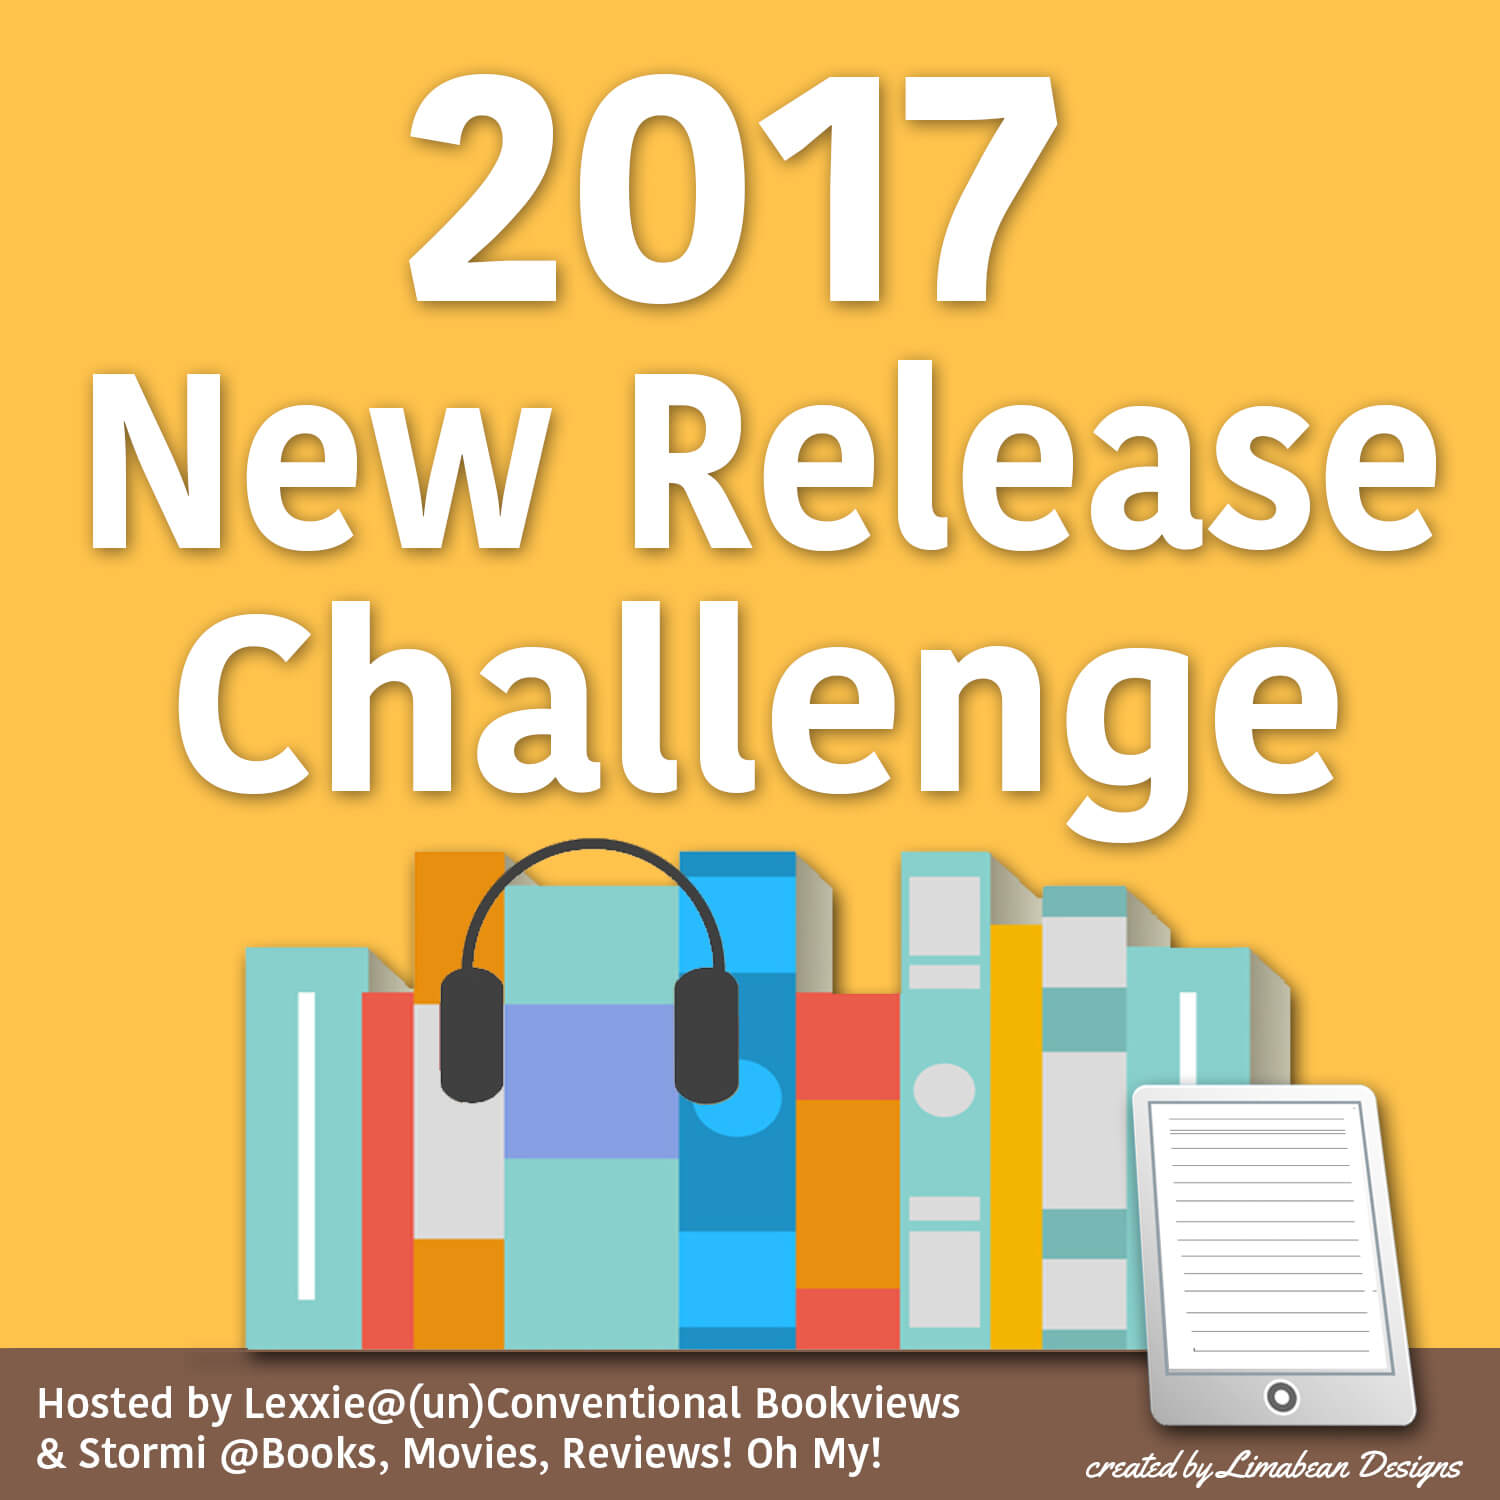 2017 New Release Challenge Sign-up